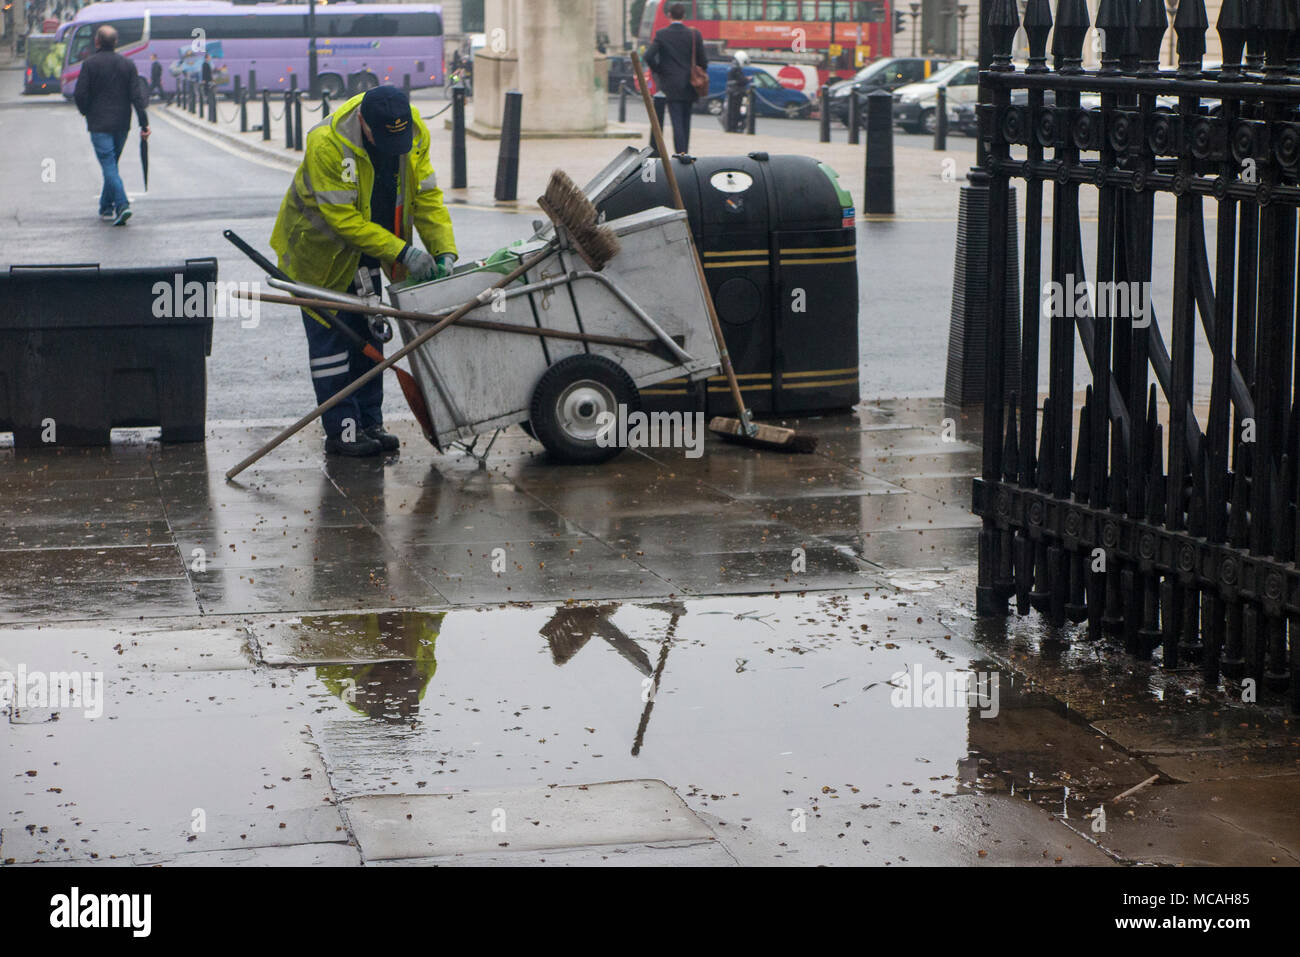 A street sweeper emptying a bin is reflected in a puddle on a rainy London street - Stock Image